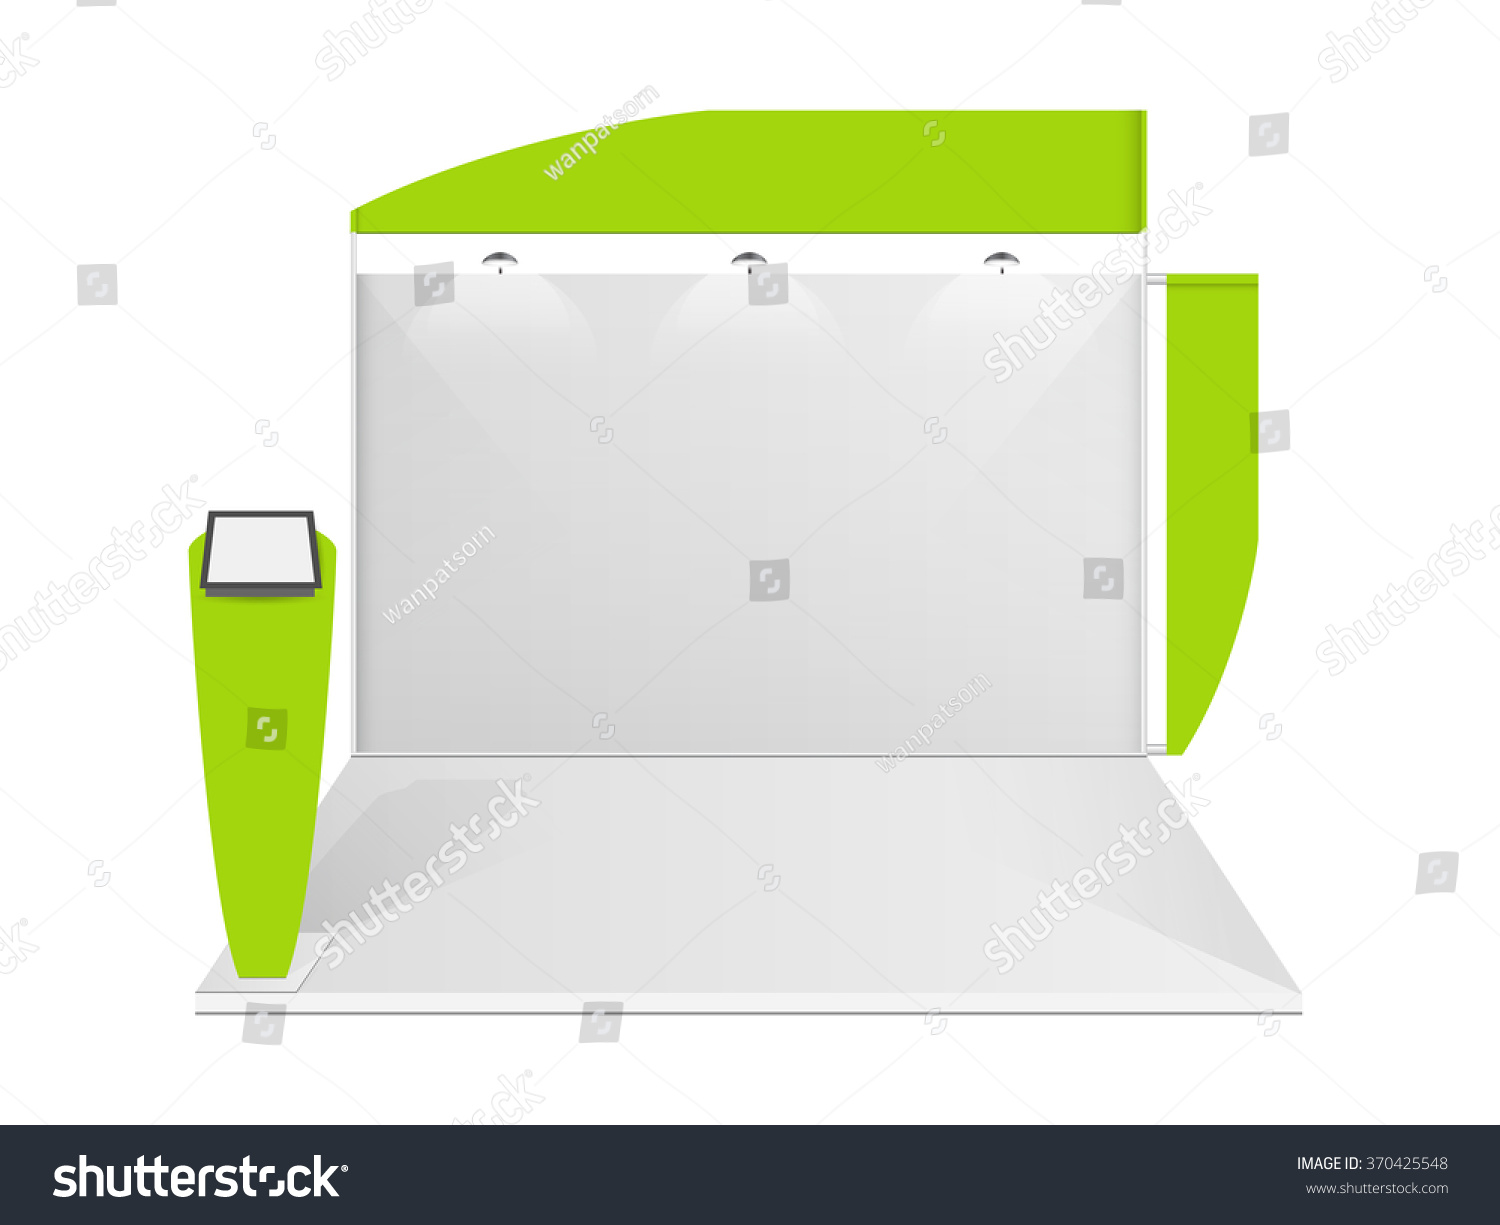 Exhibition Stall Design Vector Free Download : White creative exhibition stand design booth stock vector